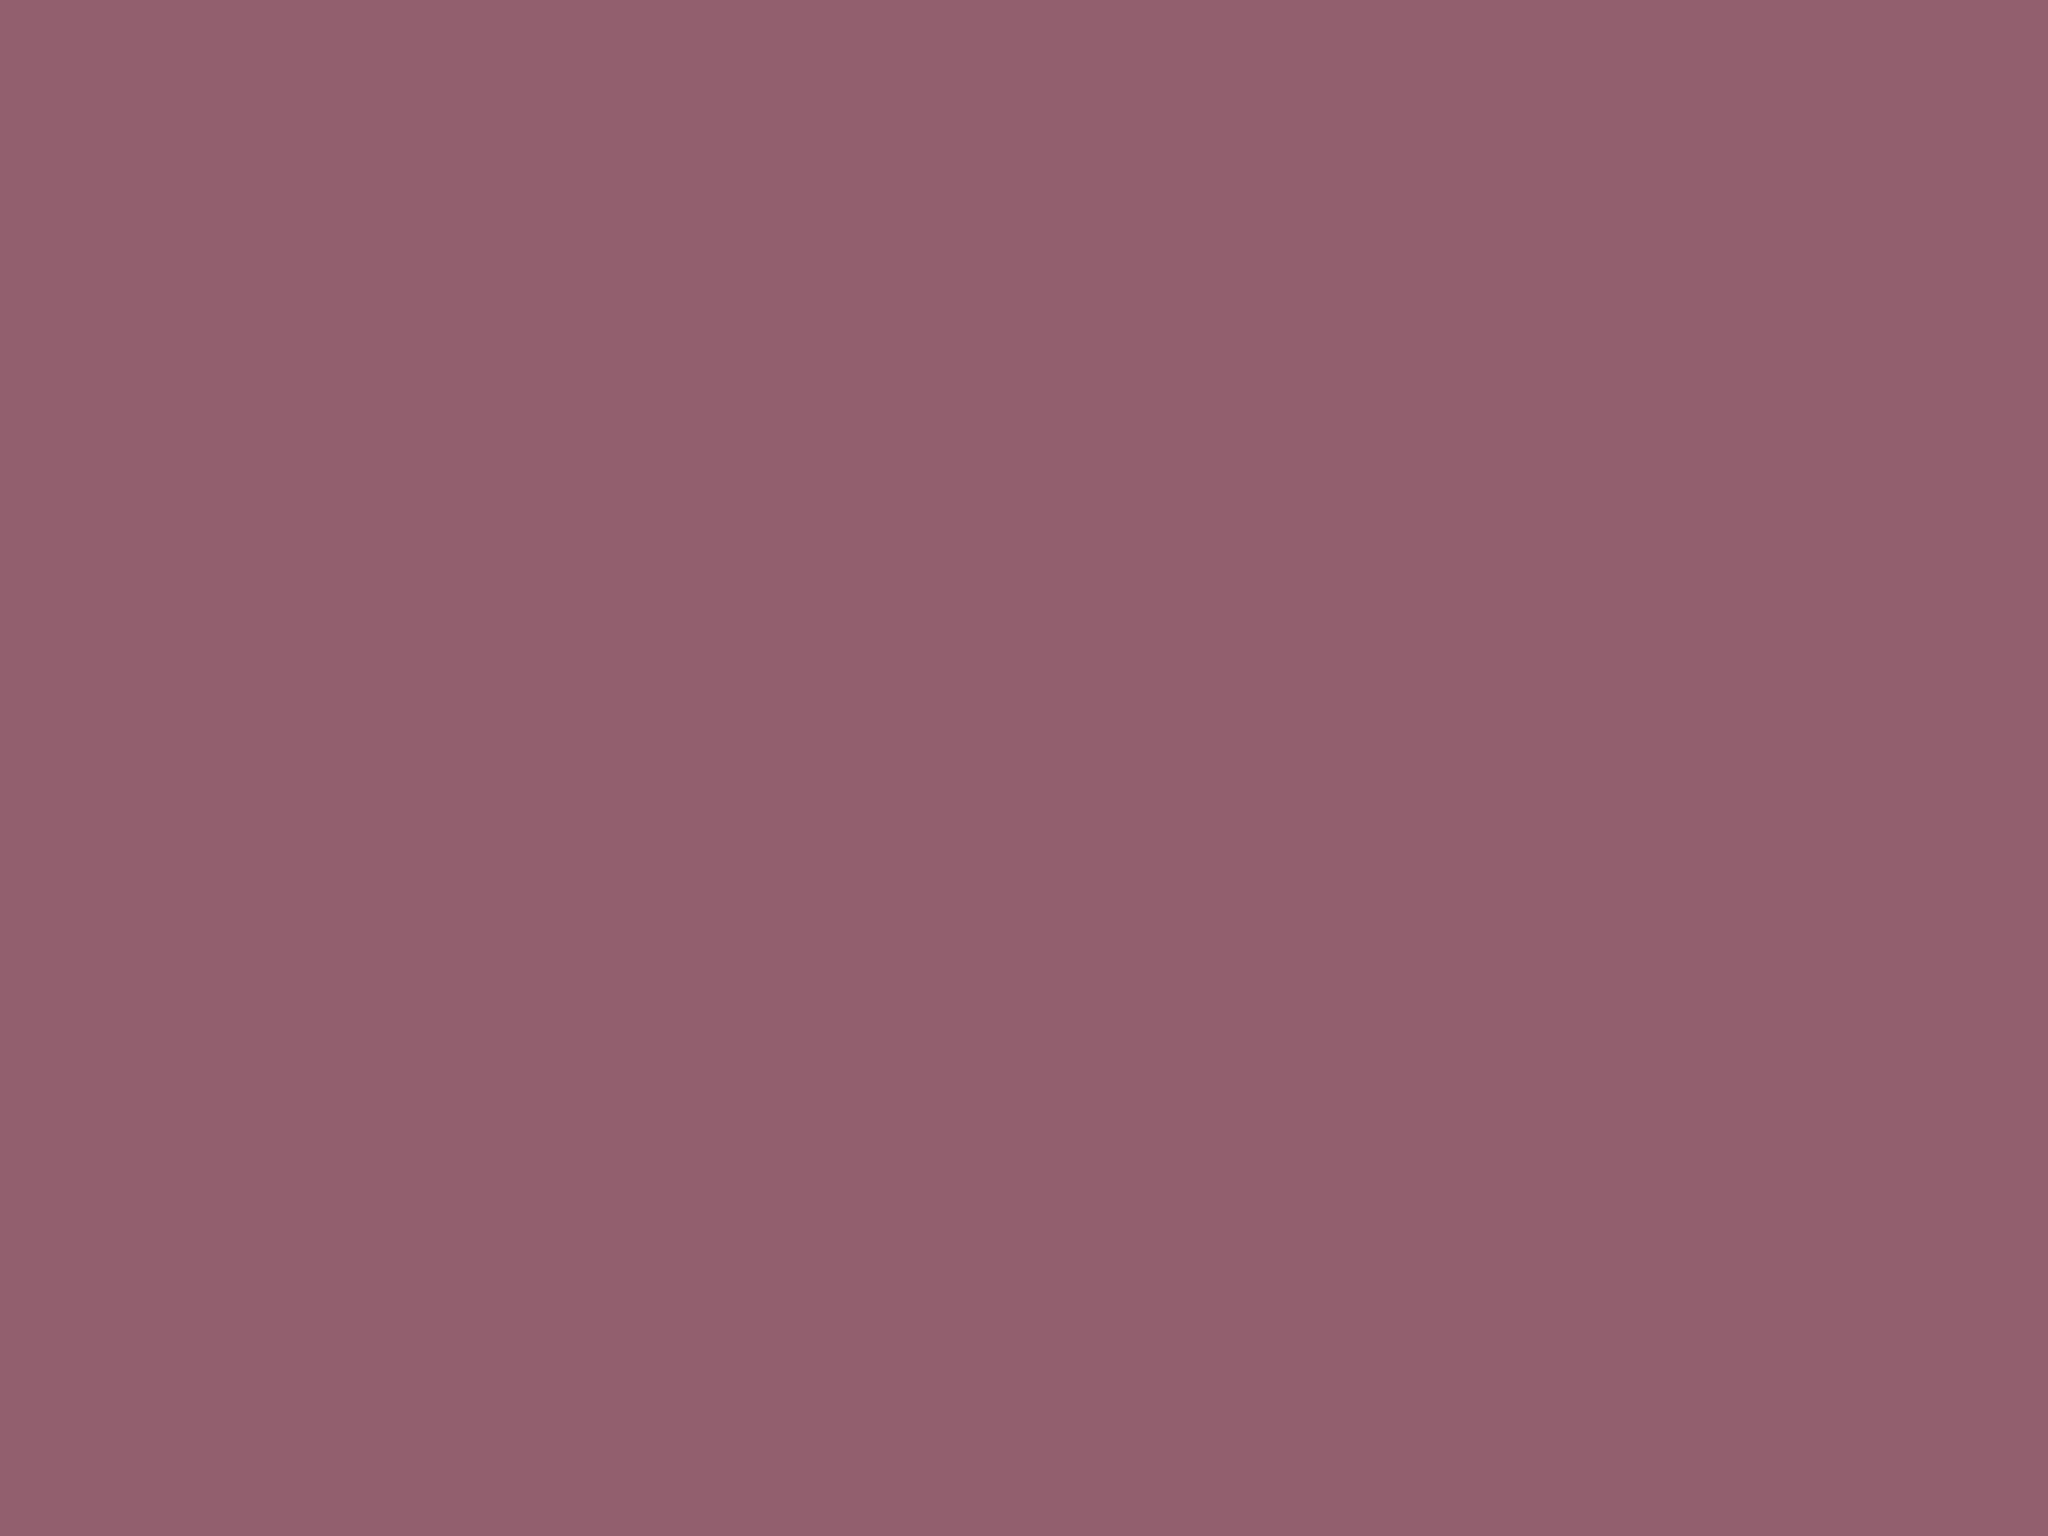 2048x1536 Mauve Taupe Solid Color Background